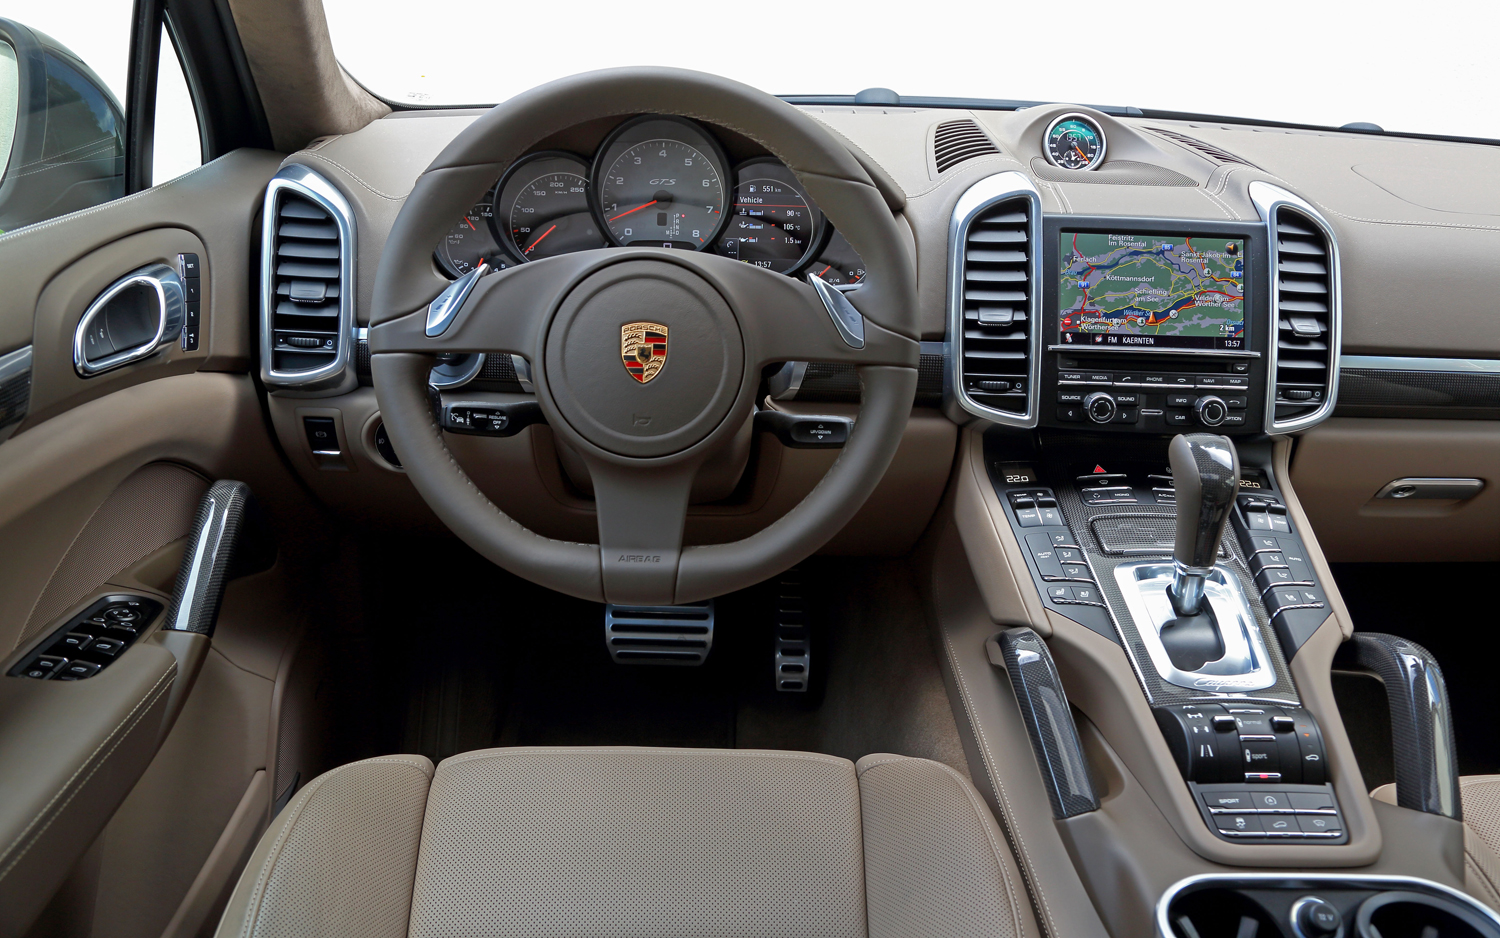 Porsche cayenne gts technical details history photos on better parts ltd Porsche cayenne interior parts